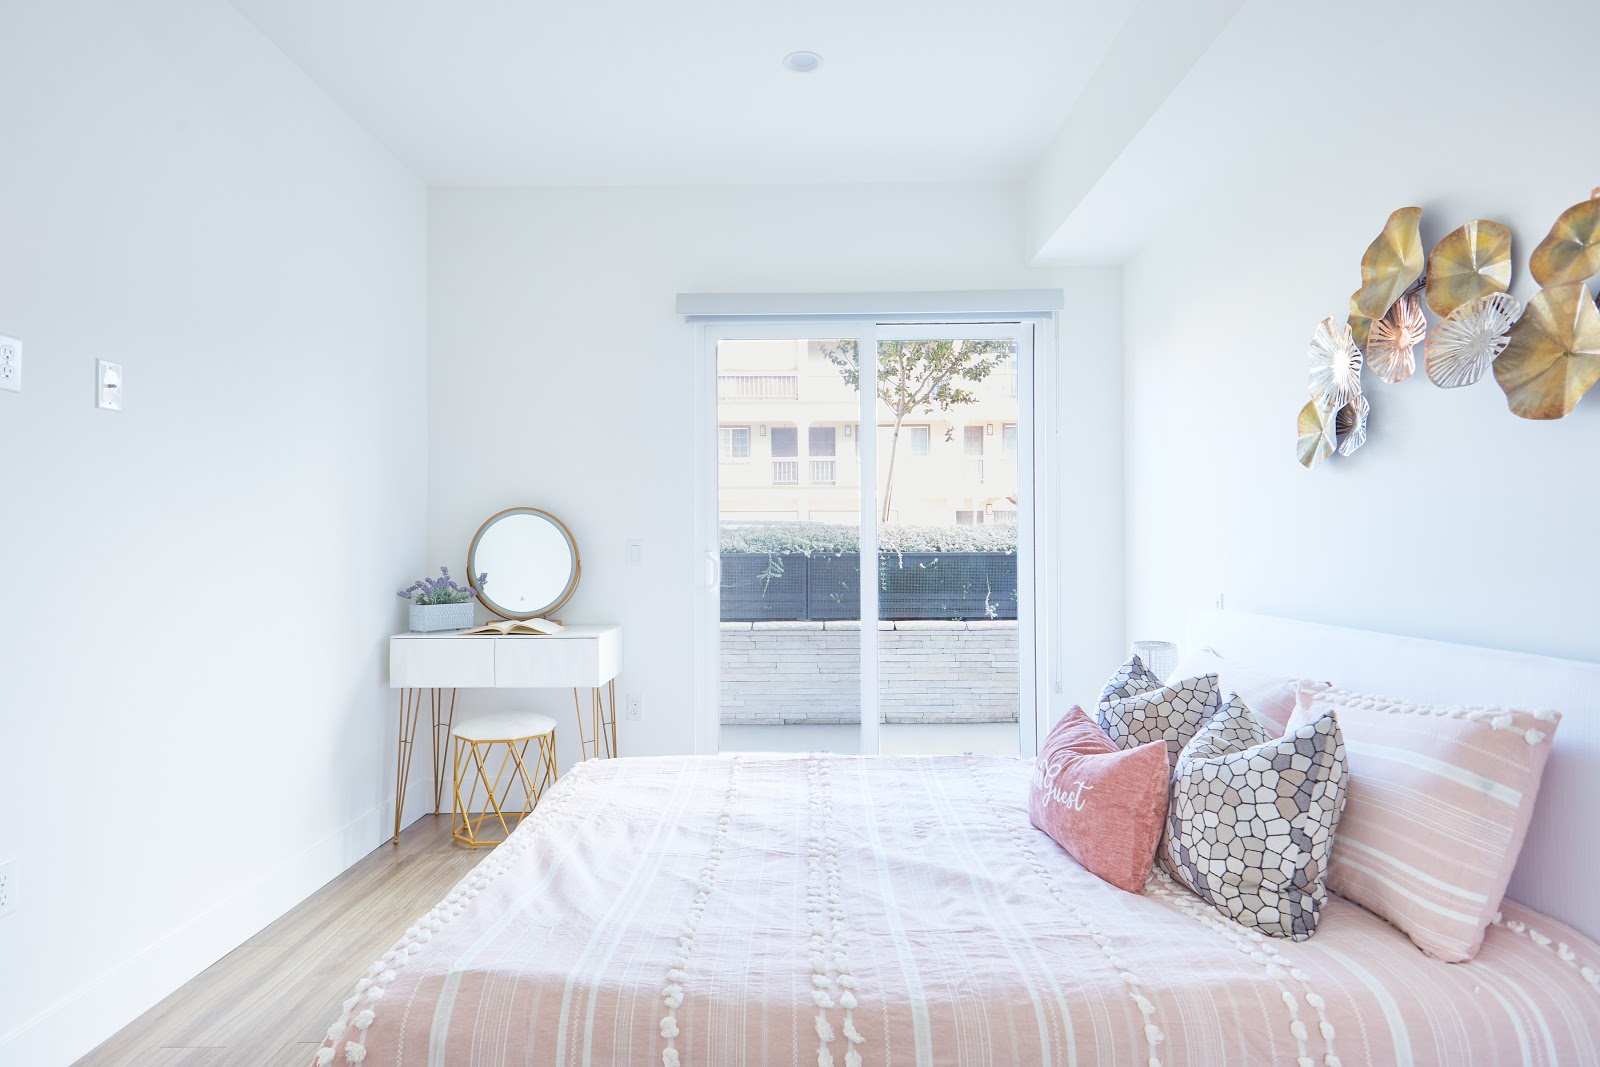 Tripalink showroom apartment layout